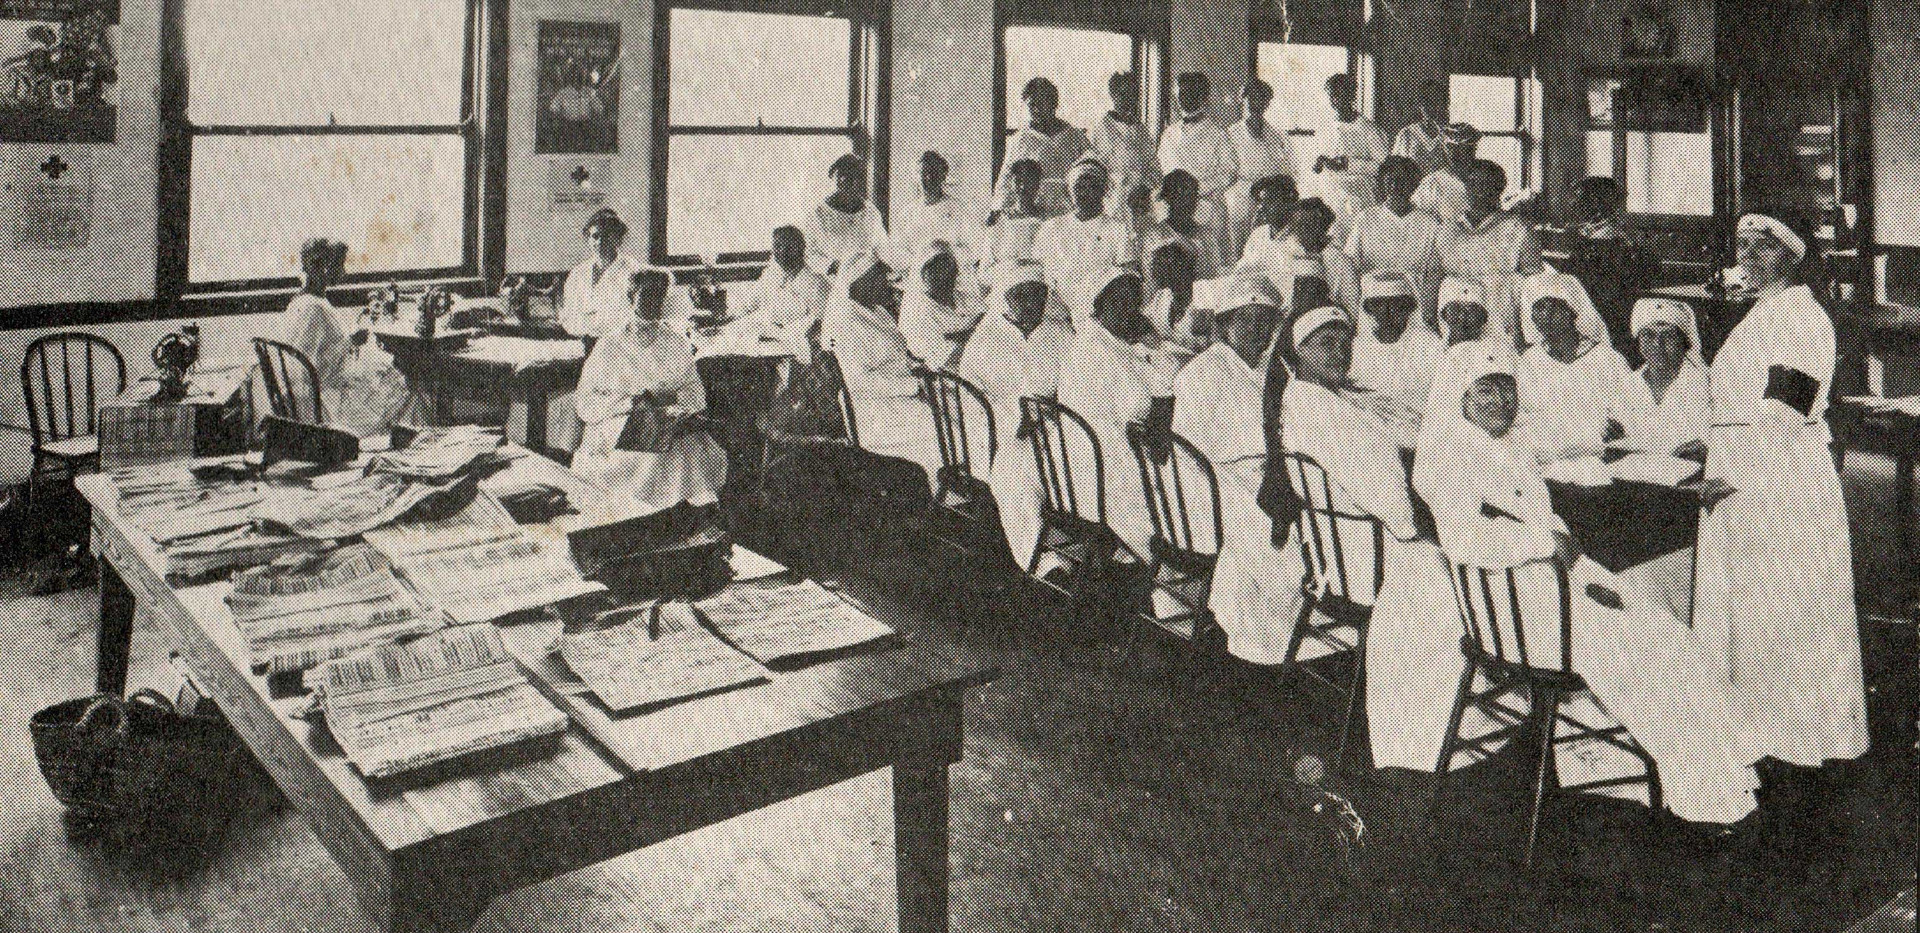 Hinsdale_Red_Cross_Unit_At_Work.jpg